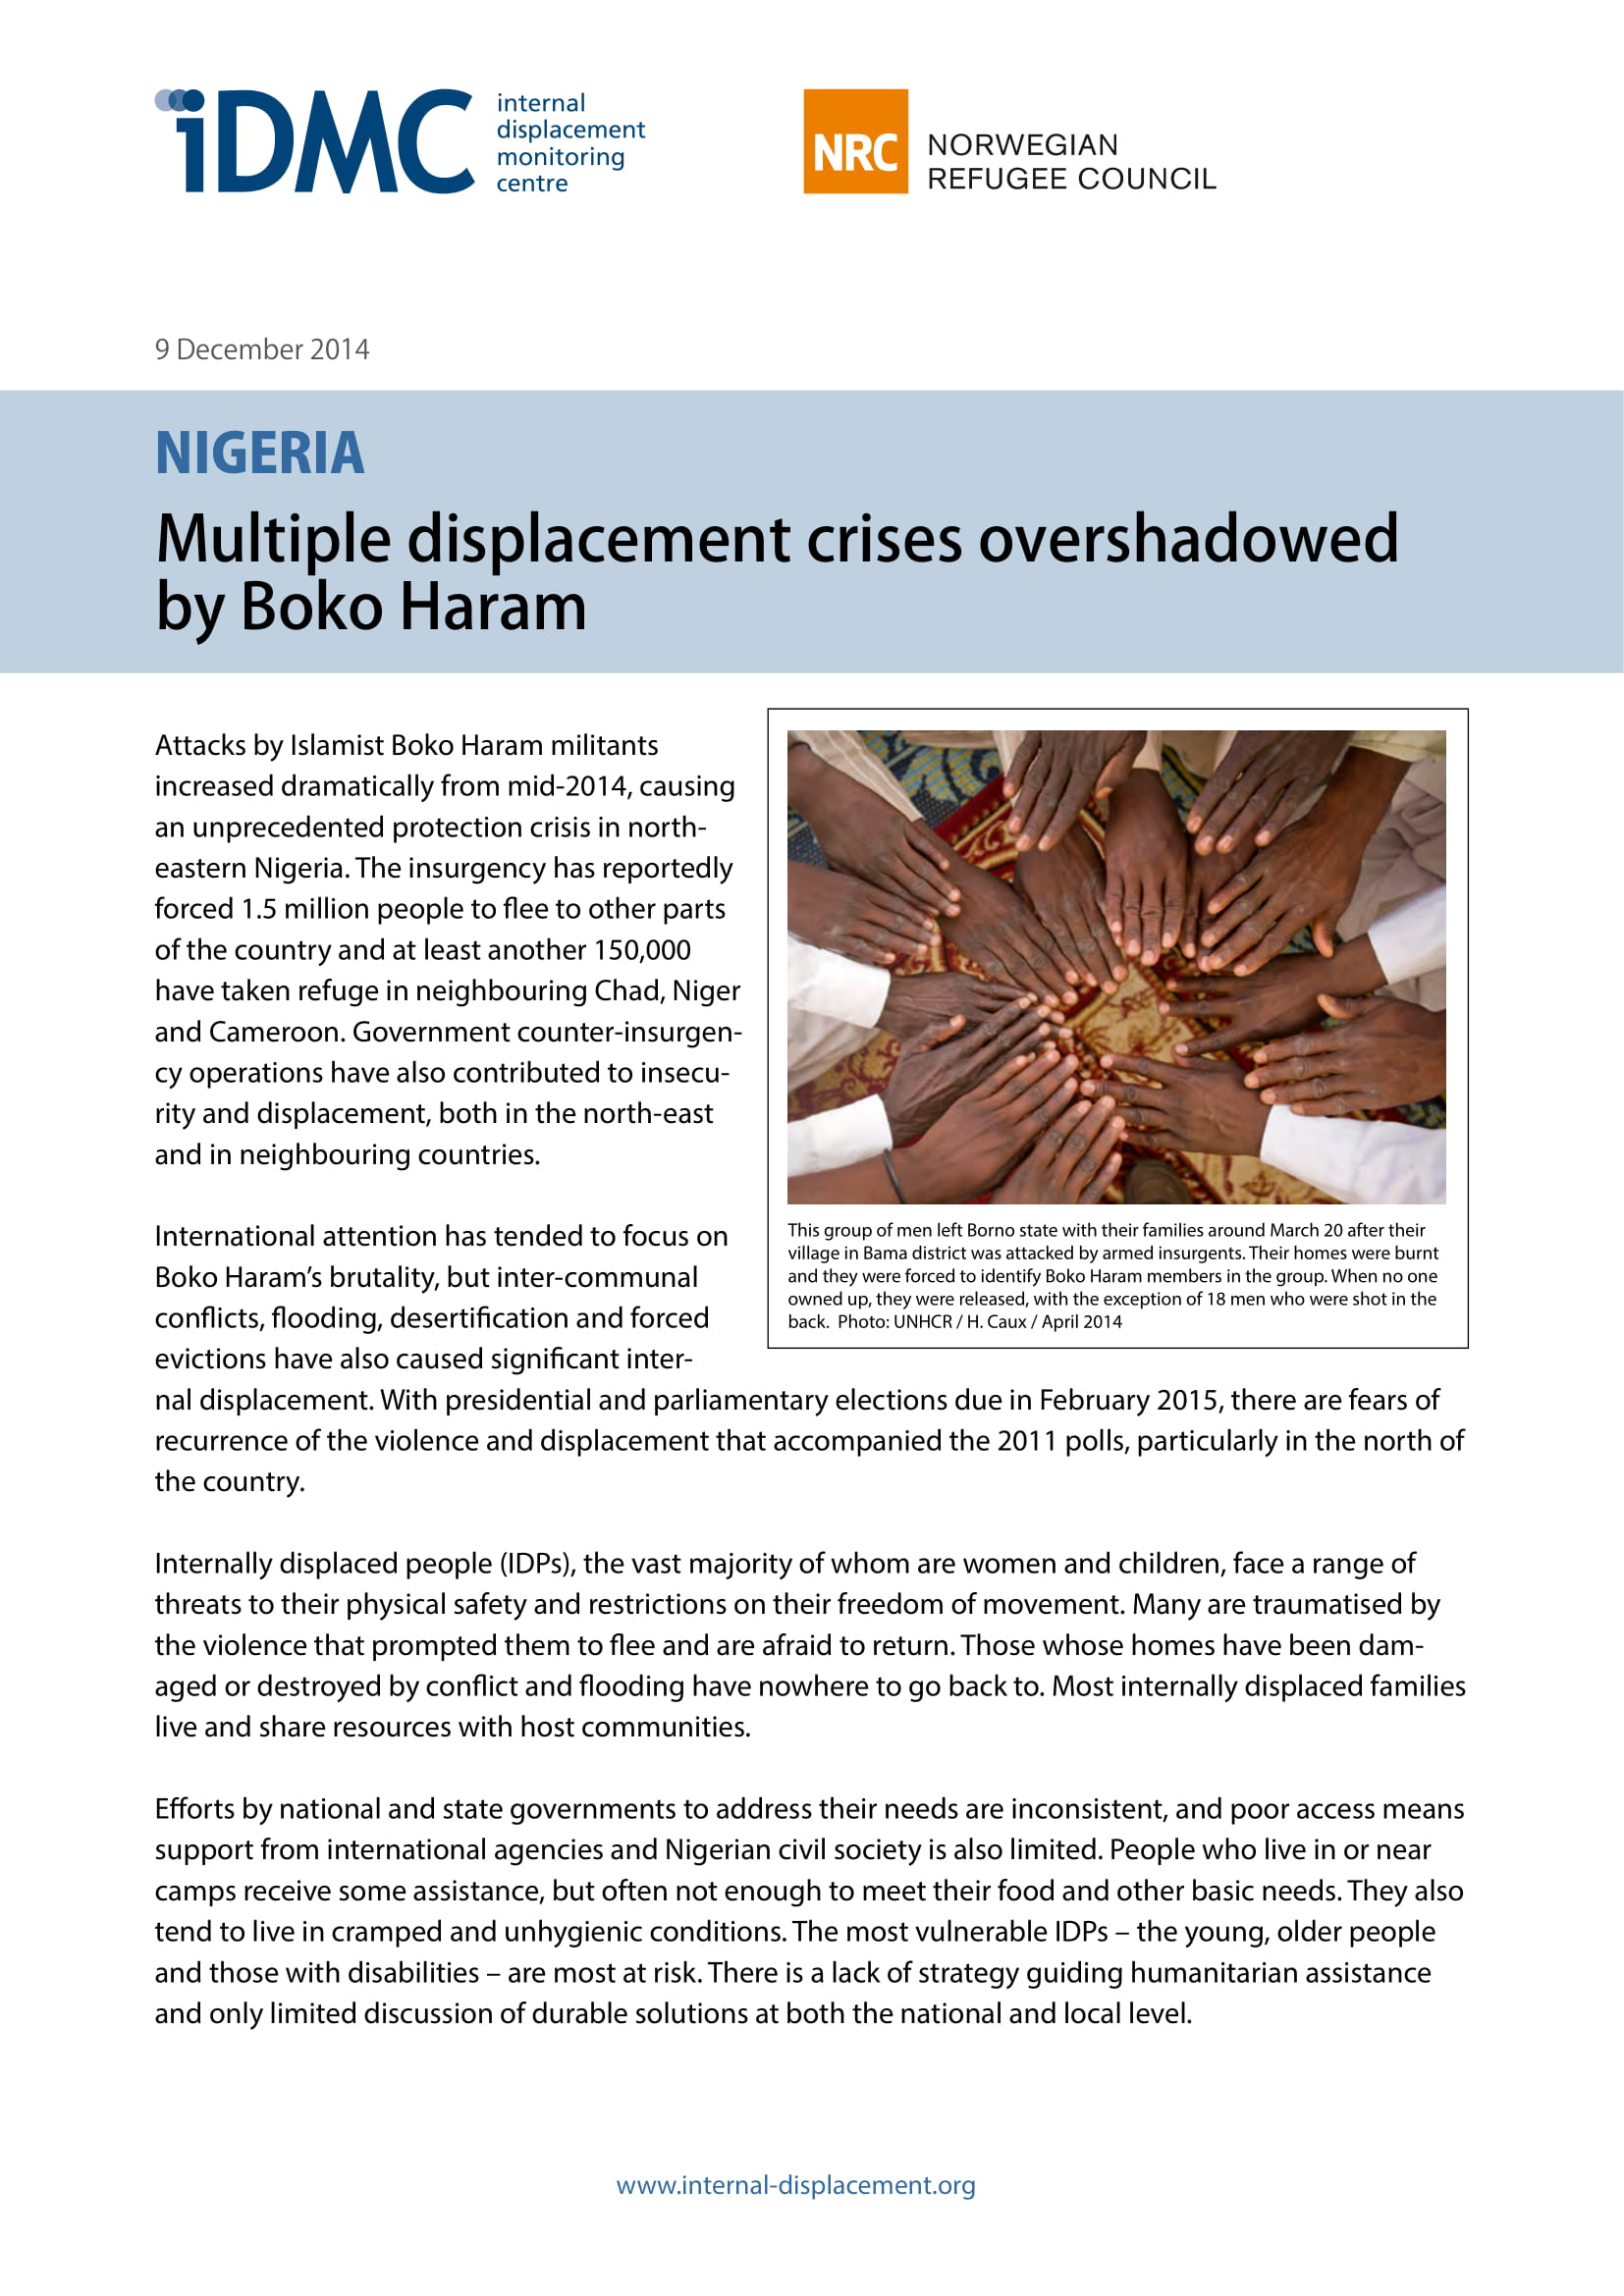 Nigeria: Multiple displacement crises overshadowed by Boko Haram